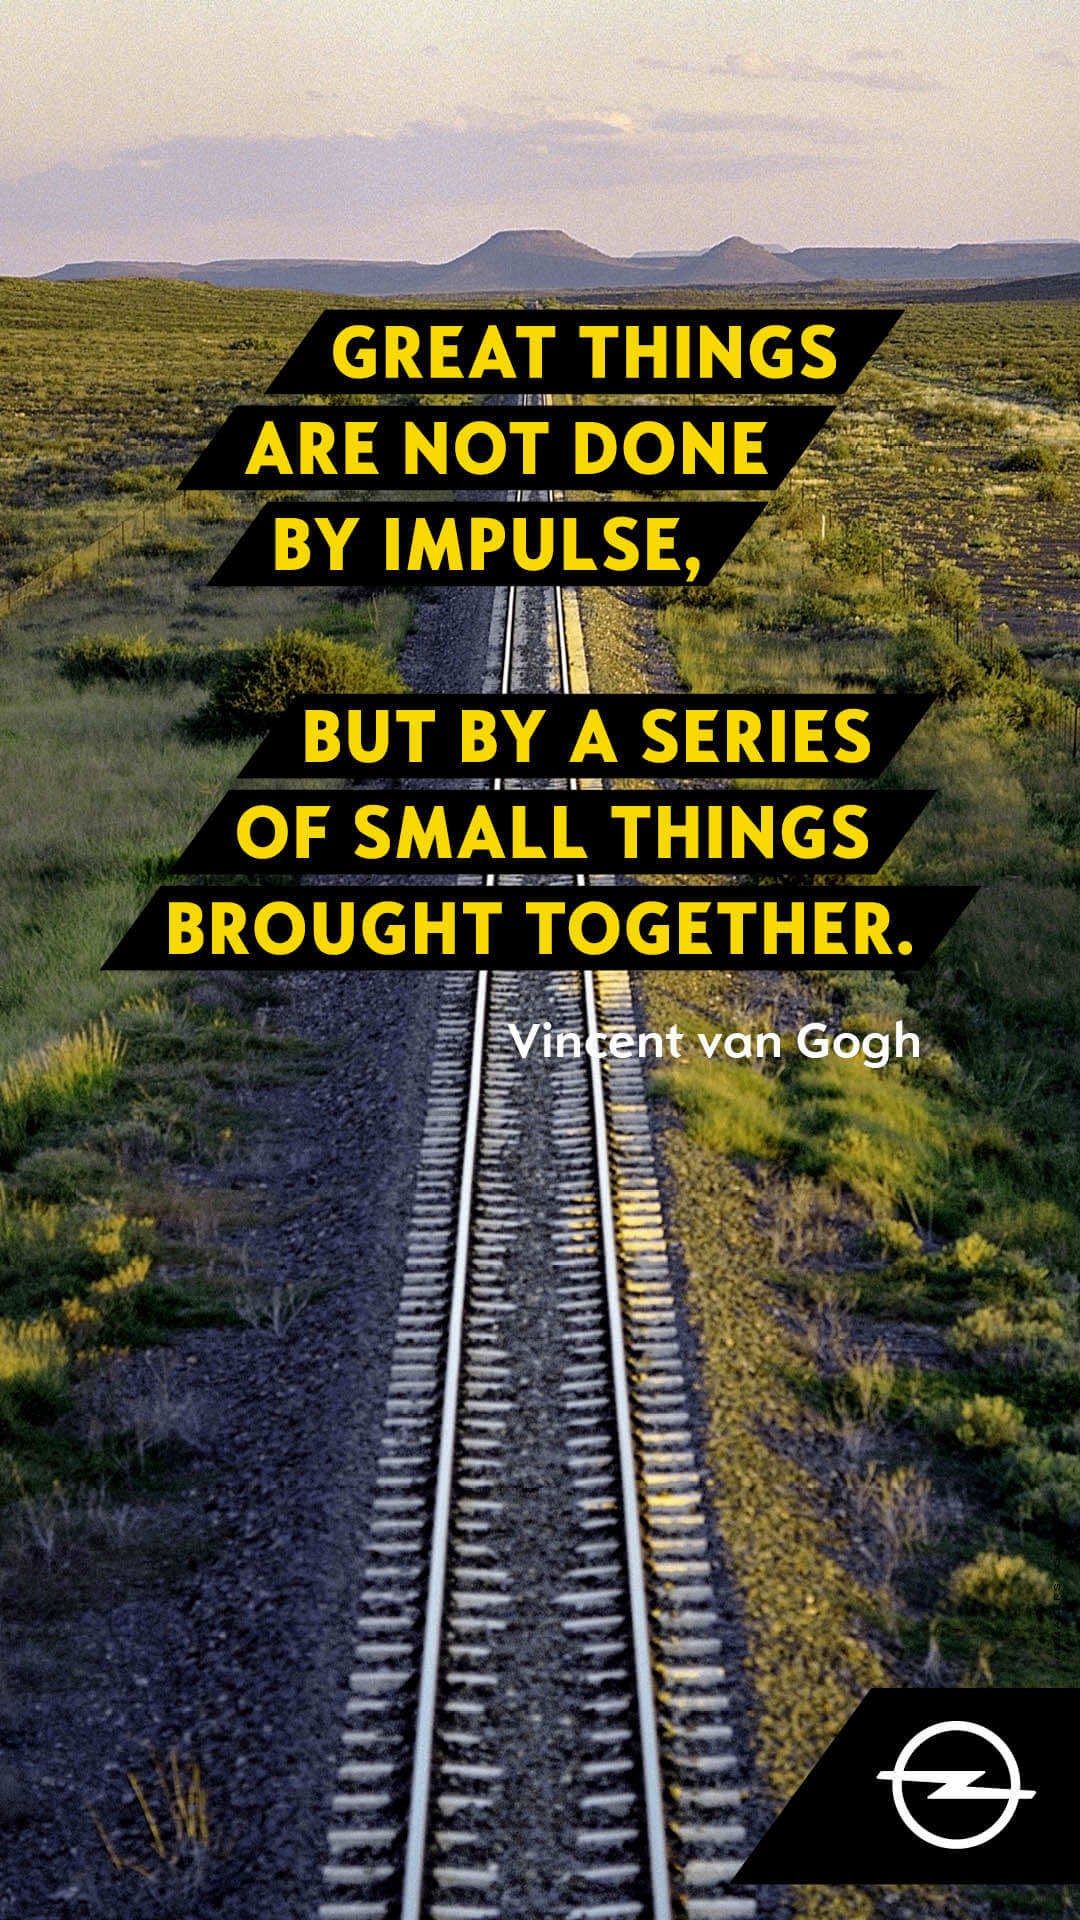 Great things are not done by impulse, but by a series of small things brought together.